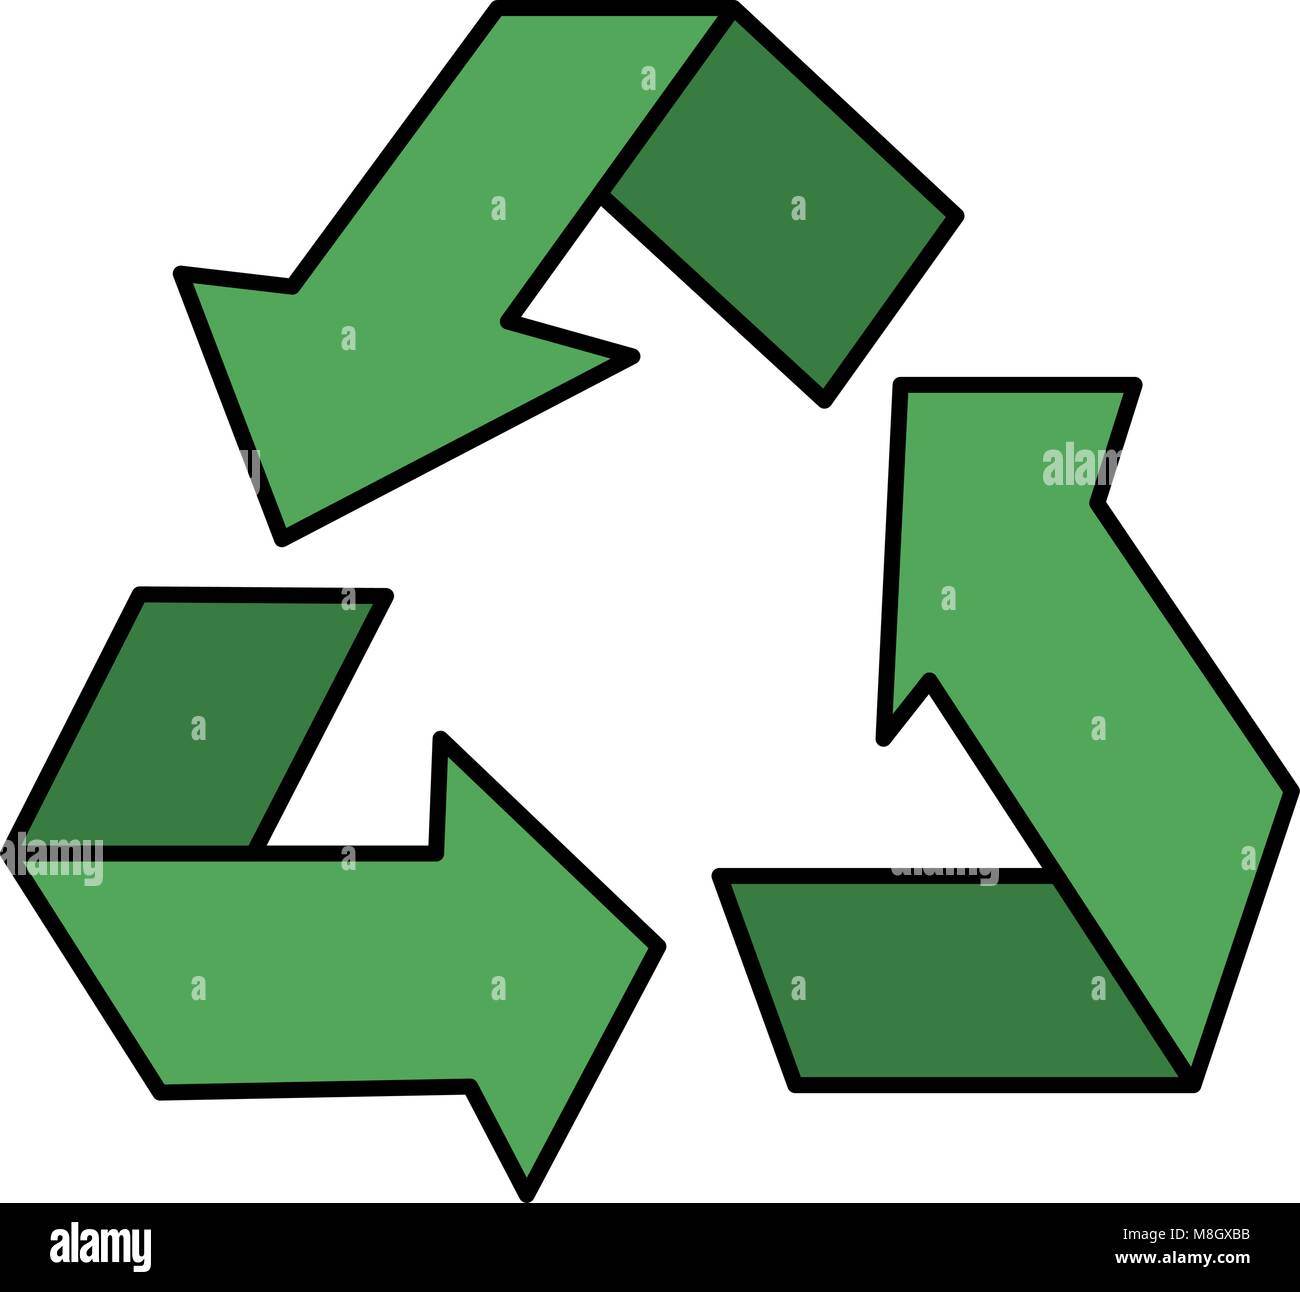 Waste product stock vector images alamy recycle arrows symbol icon vector illustration design stock vector buycottarizona Choice Image